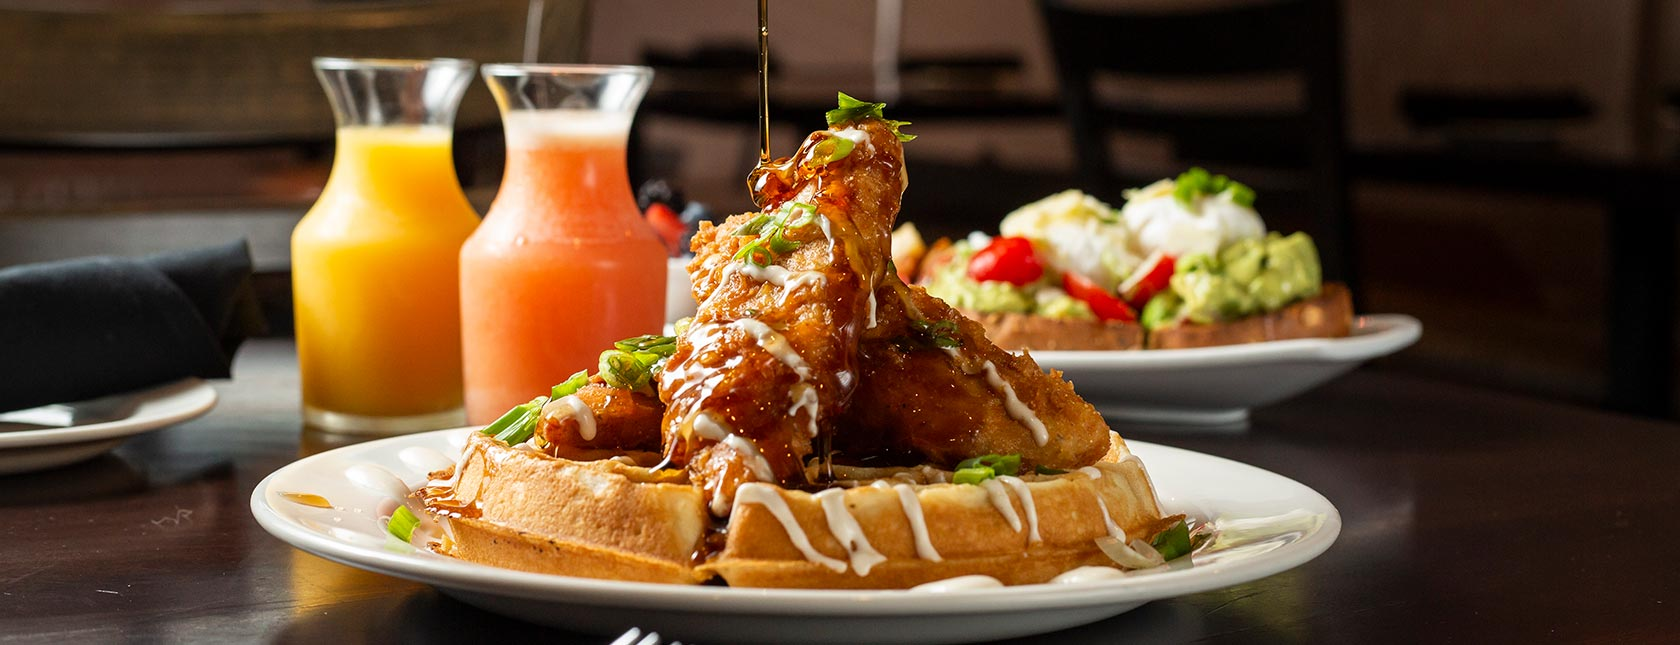 Syrup pouring over chicken and waffles with juices in background.